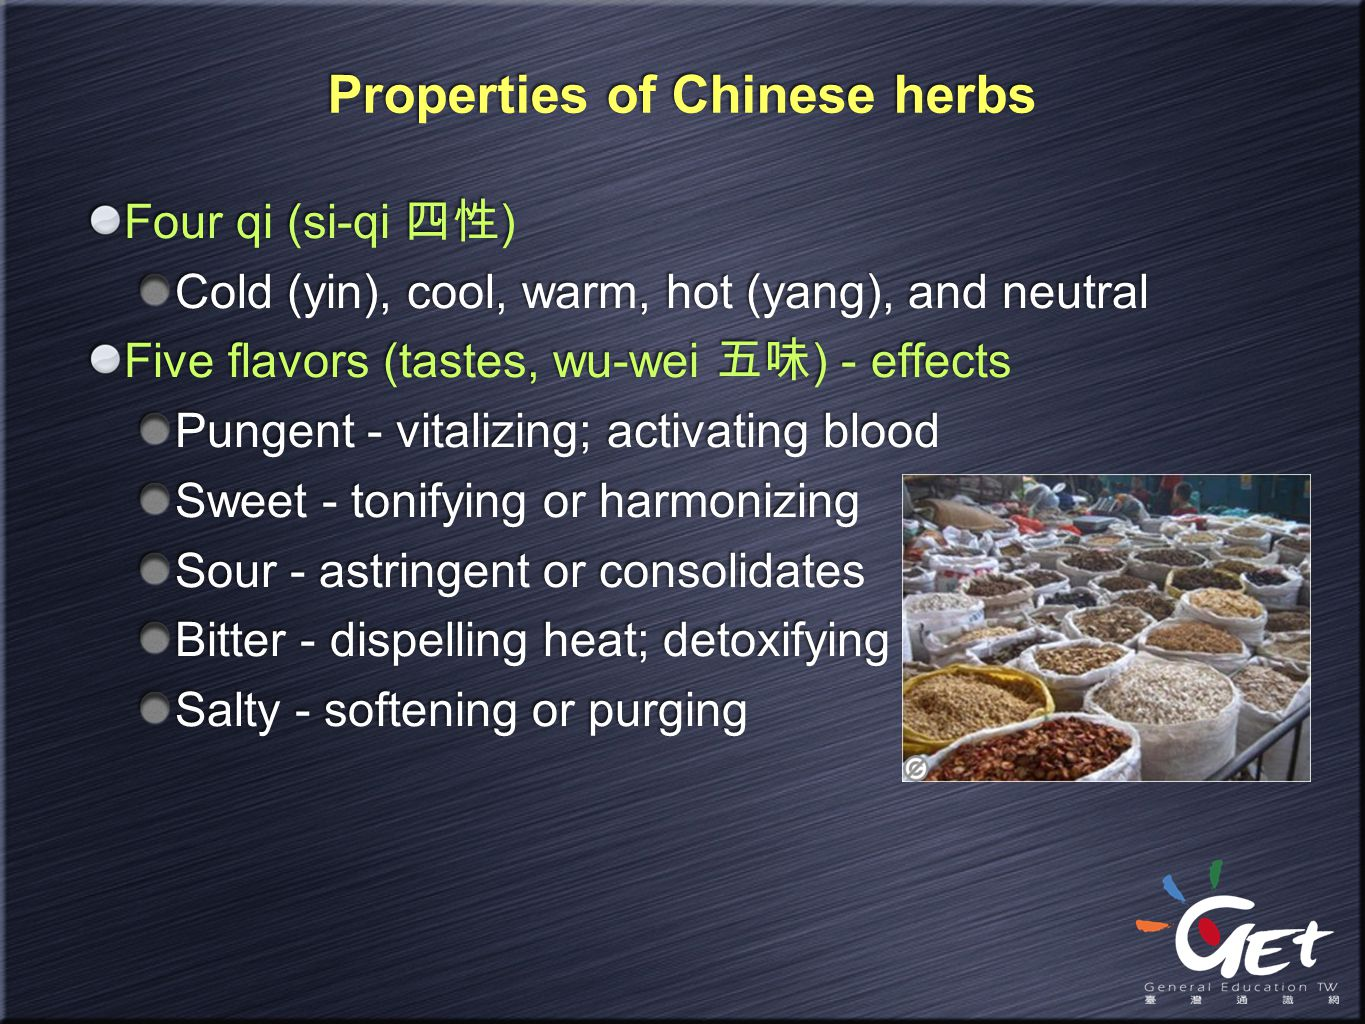 Properties of Chinese herbs